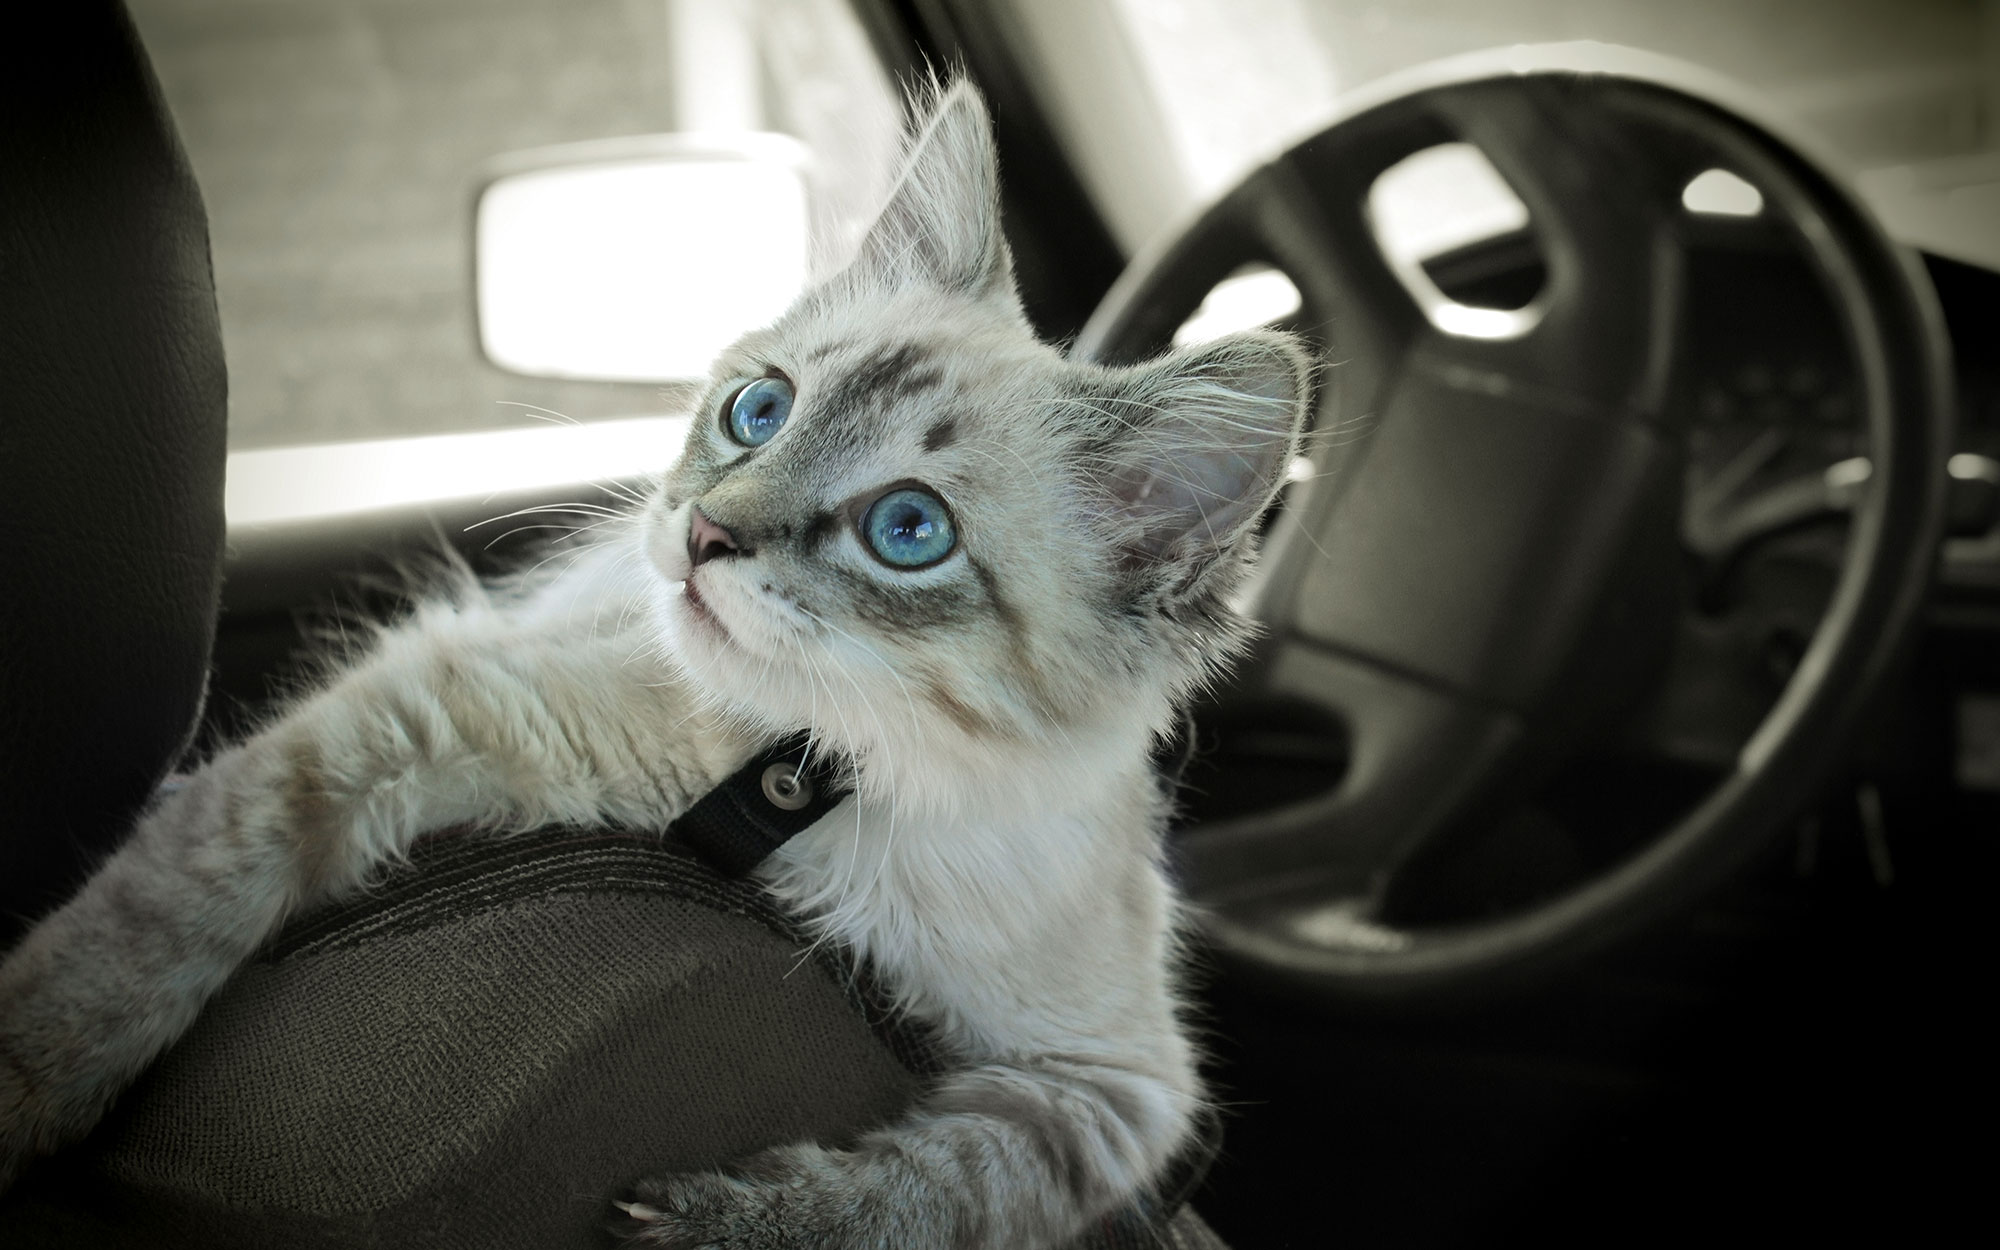 A white tabby kitten with blue eyes riding inside of a car